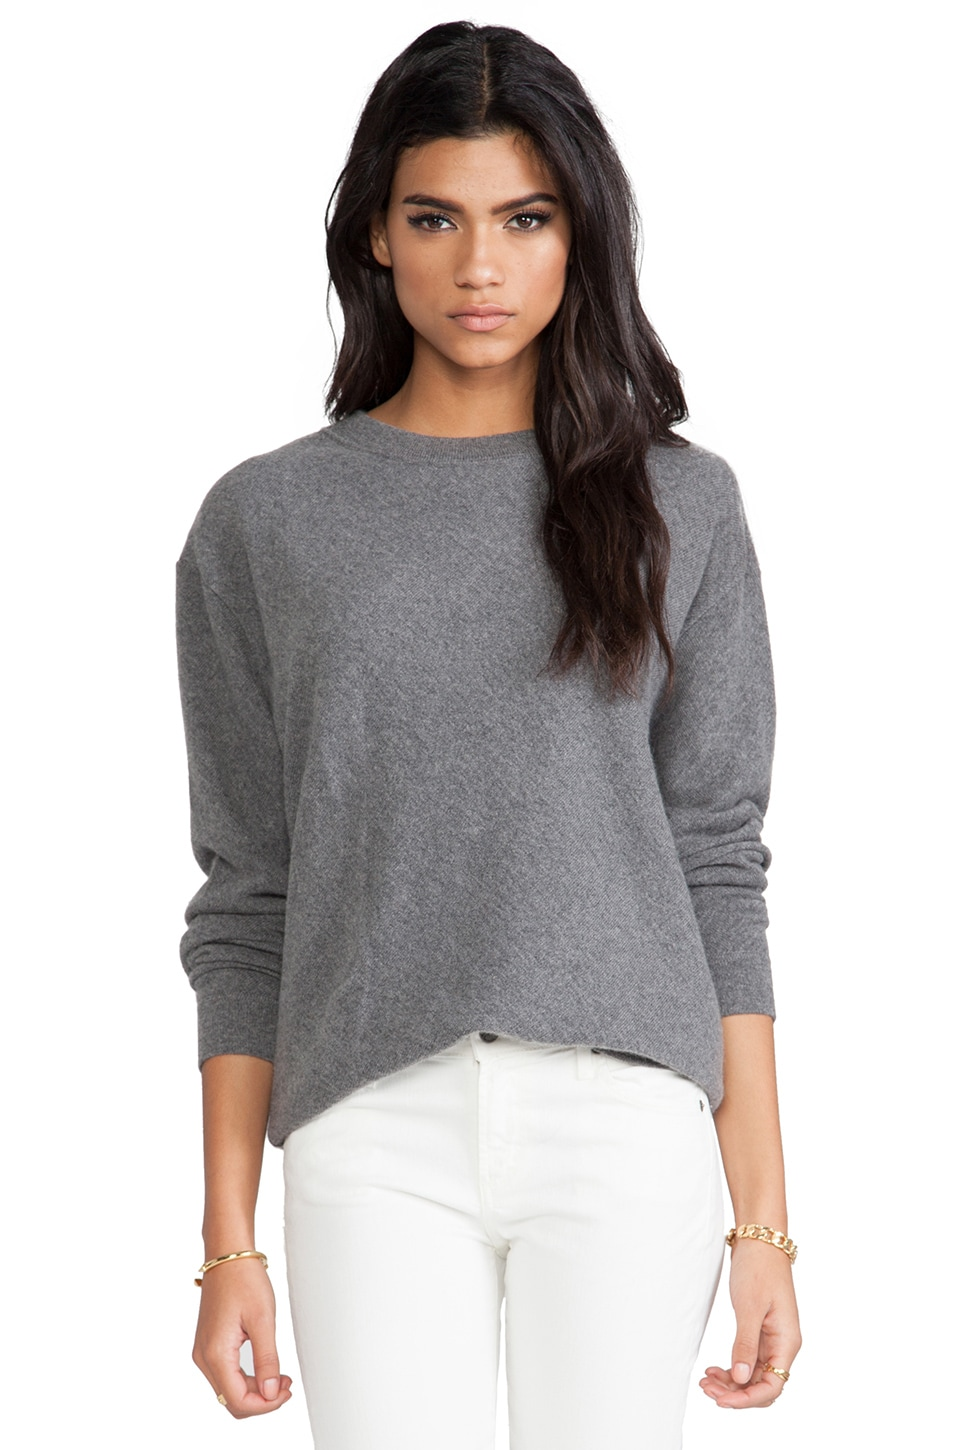 DemyLee Gigi Cashmere Pullover in Medium Heather Grey